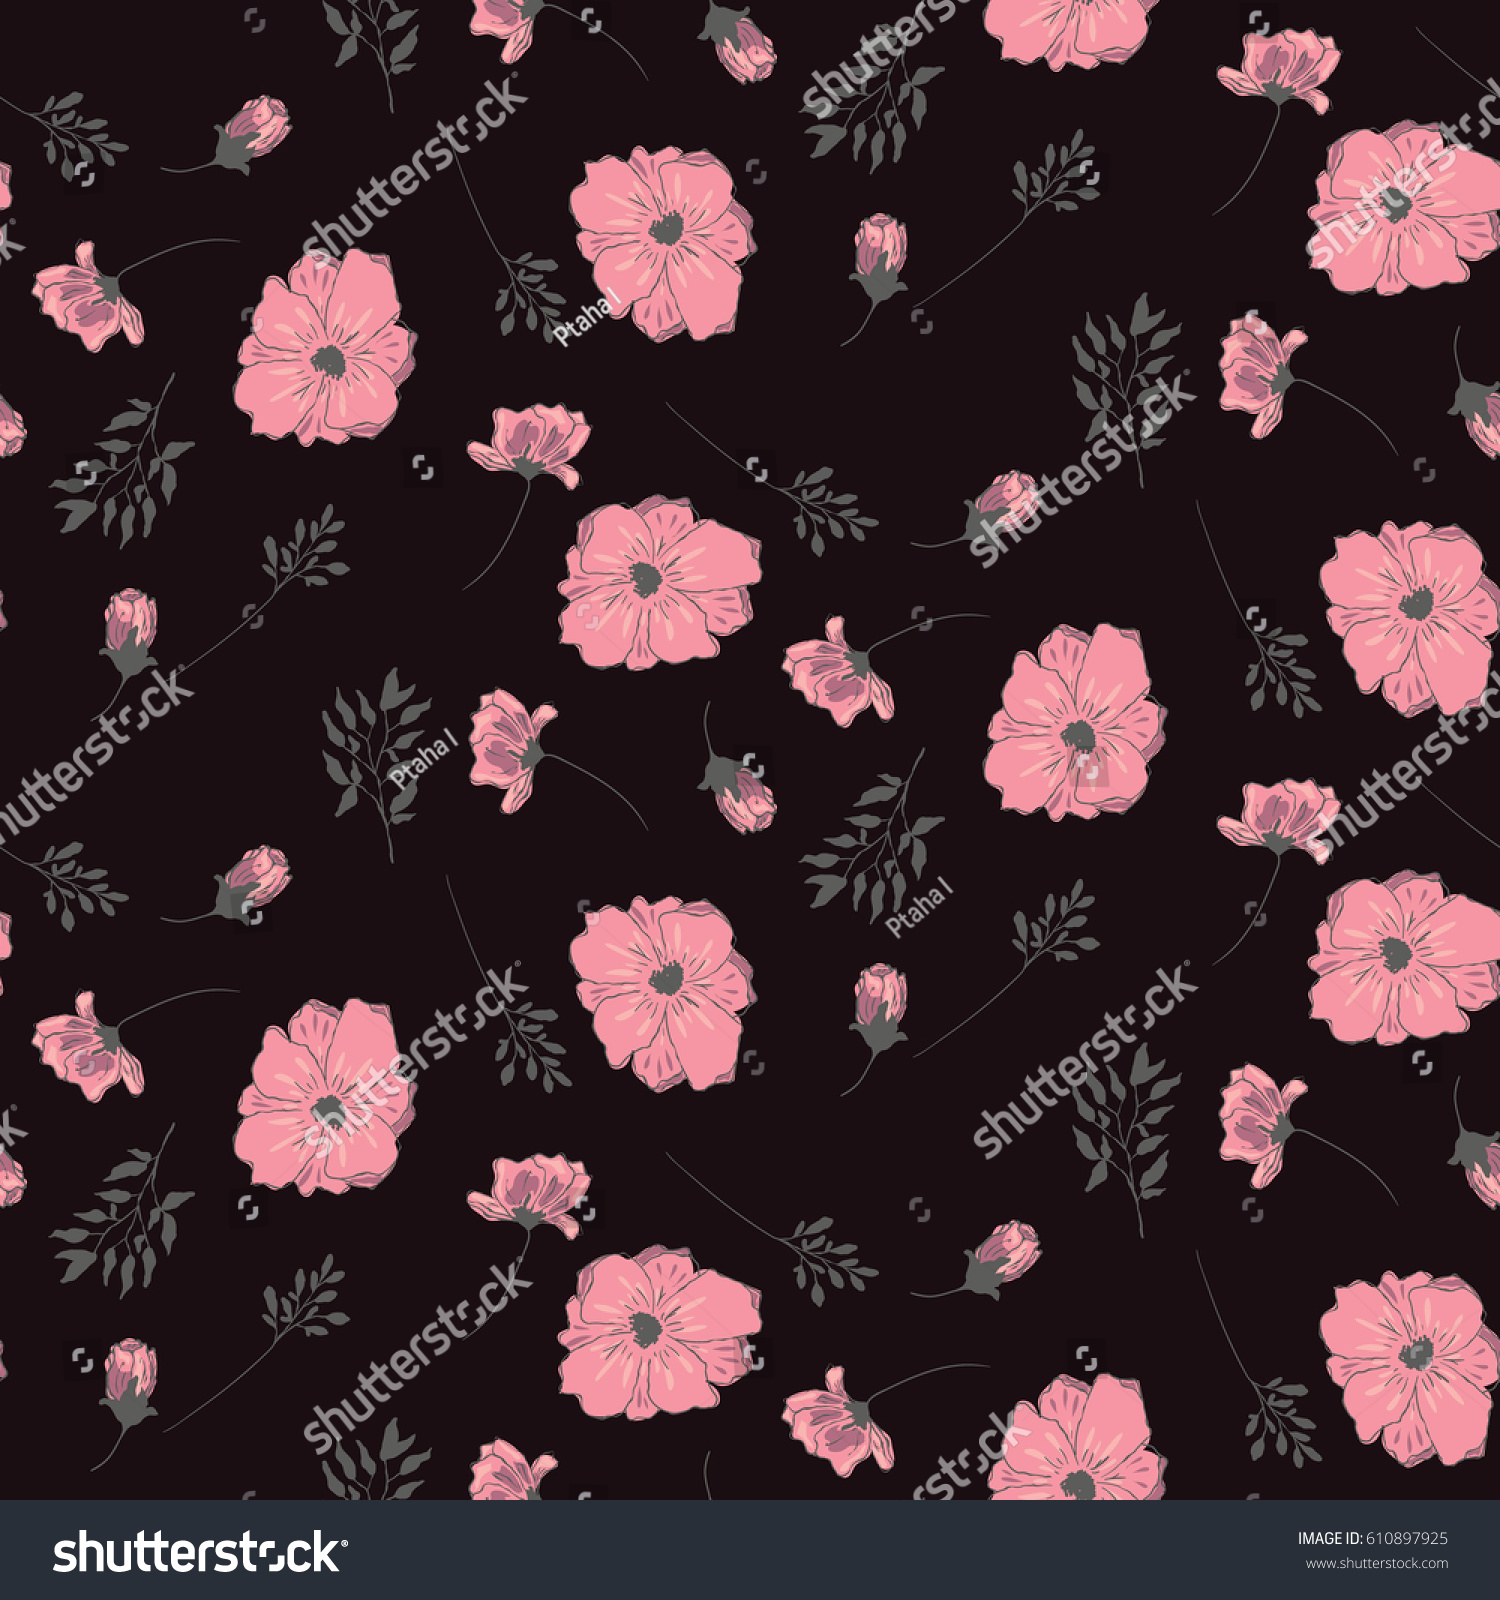 Pink flowers on black background floral stock vector royalty free pink flowers on a black background floral pattern on a white background wallpaper seamless mightylinksfo